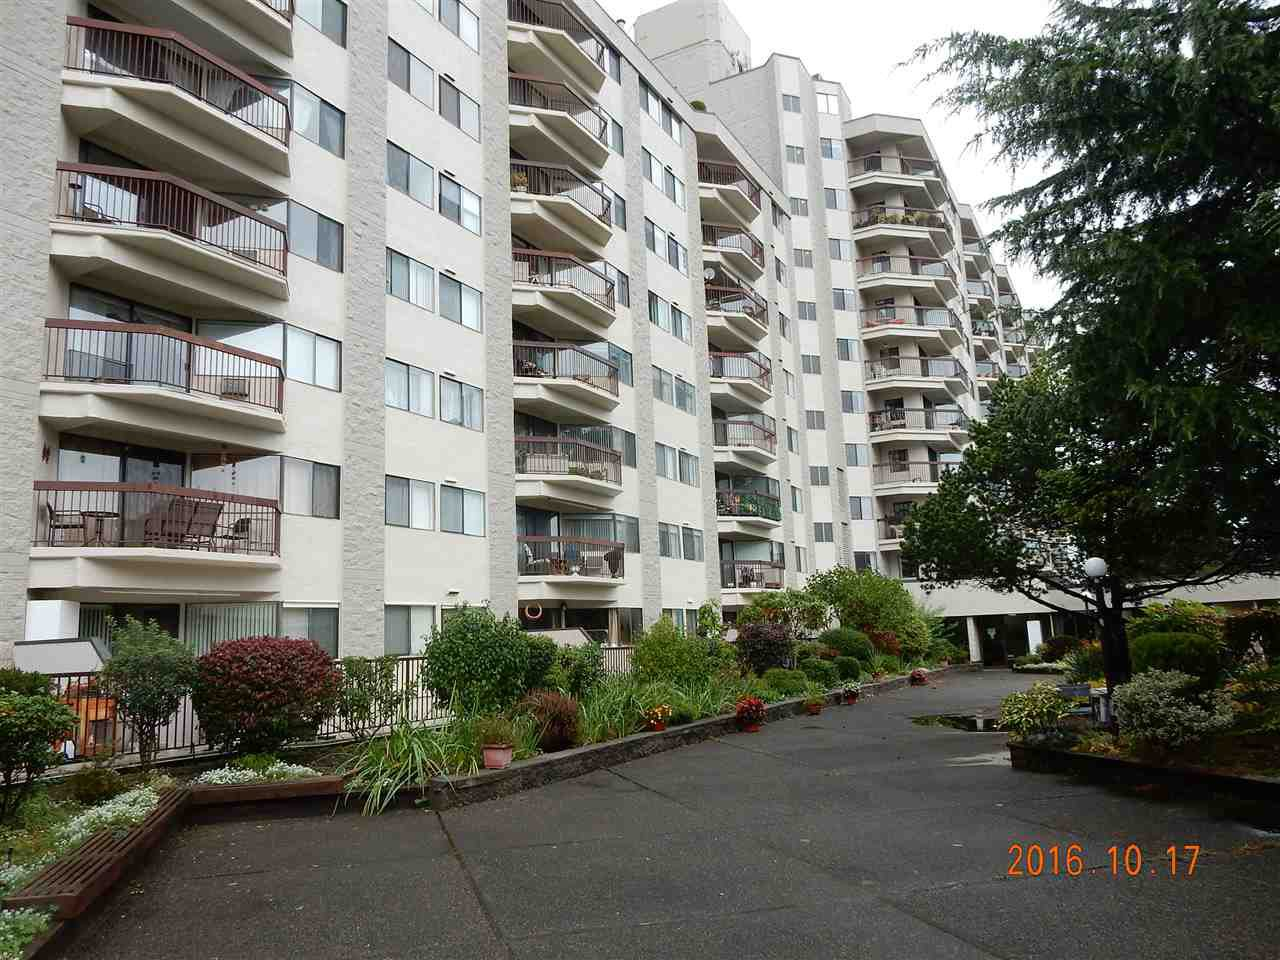 """Photo 1: Photos: 816 31955 OLD YALE Road in Abbotsford: Abbotsford West Condo for sale in """"Evergreen Village"""" : MLS®# R2117382"""